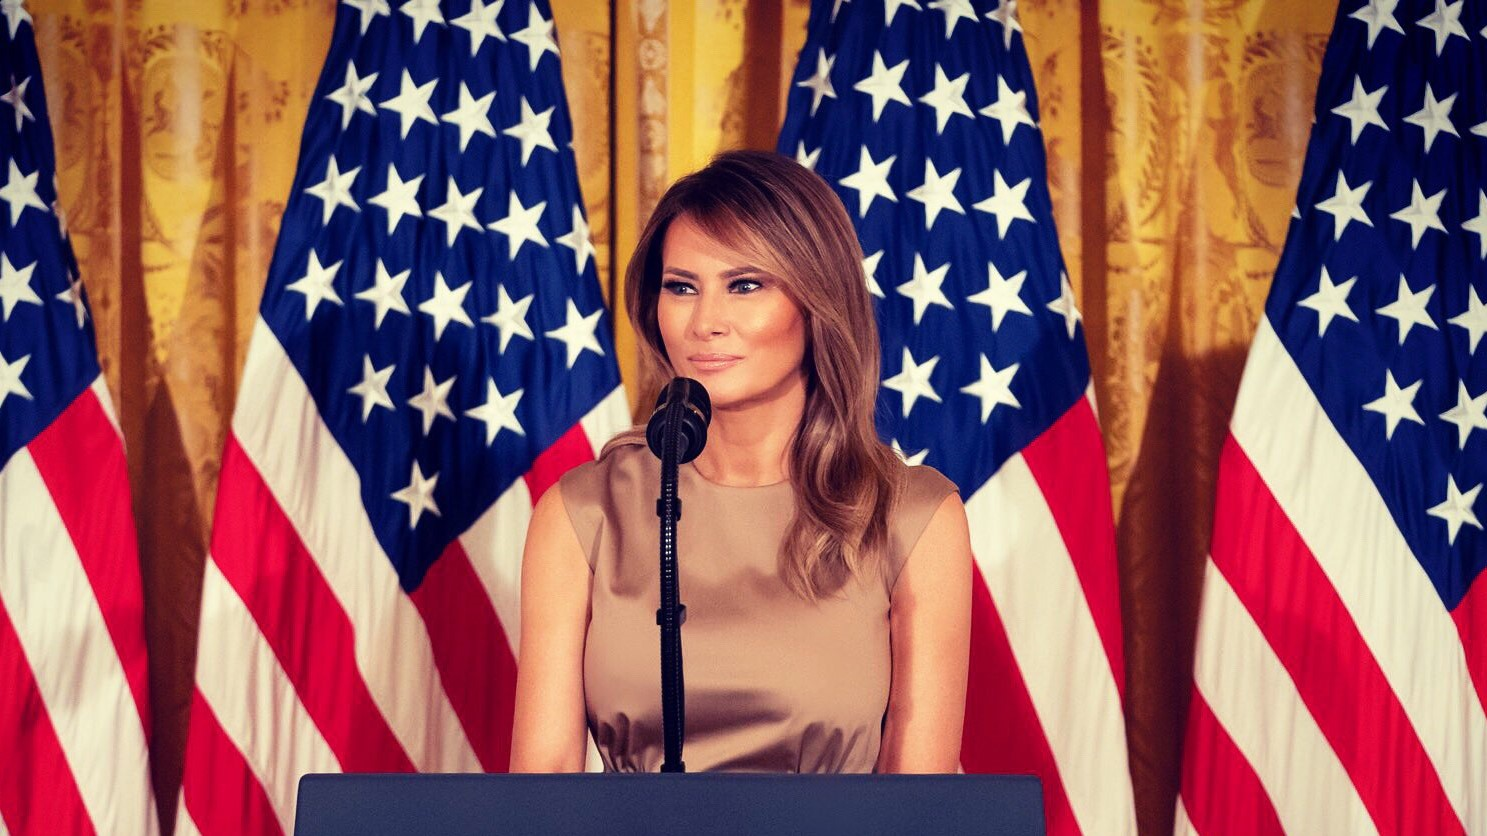 First Lady Melania Trump: Our Path Forward